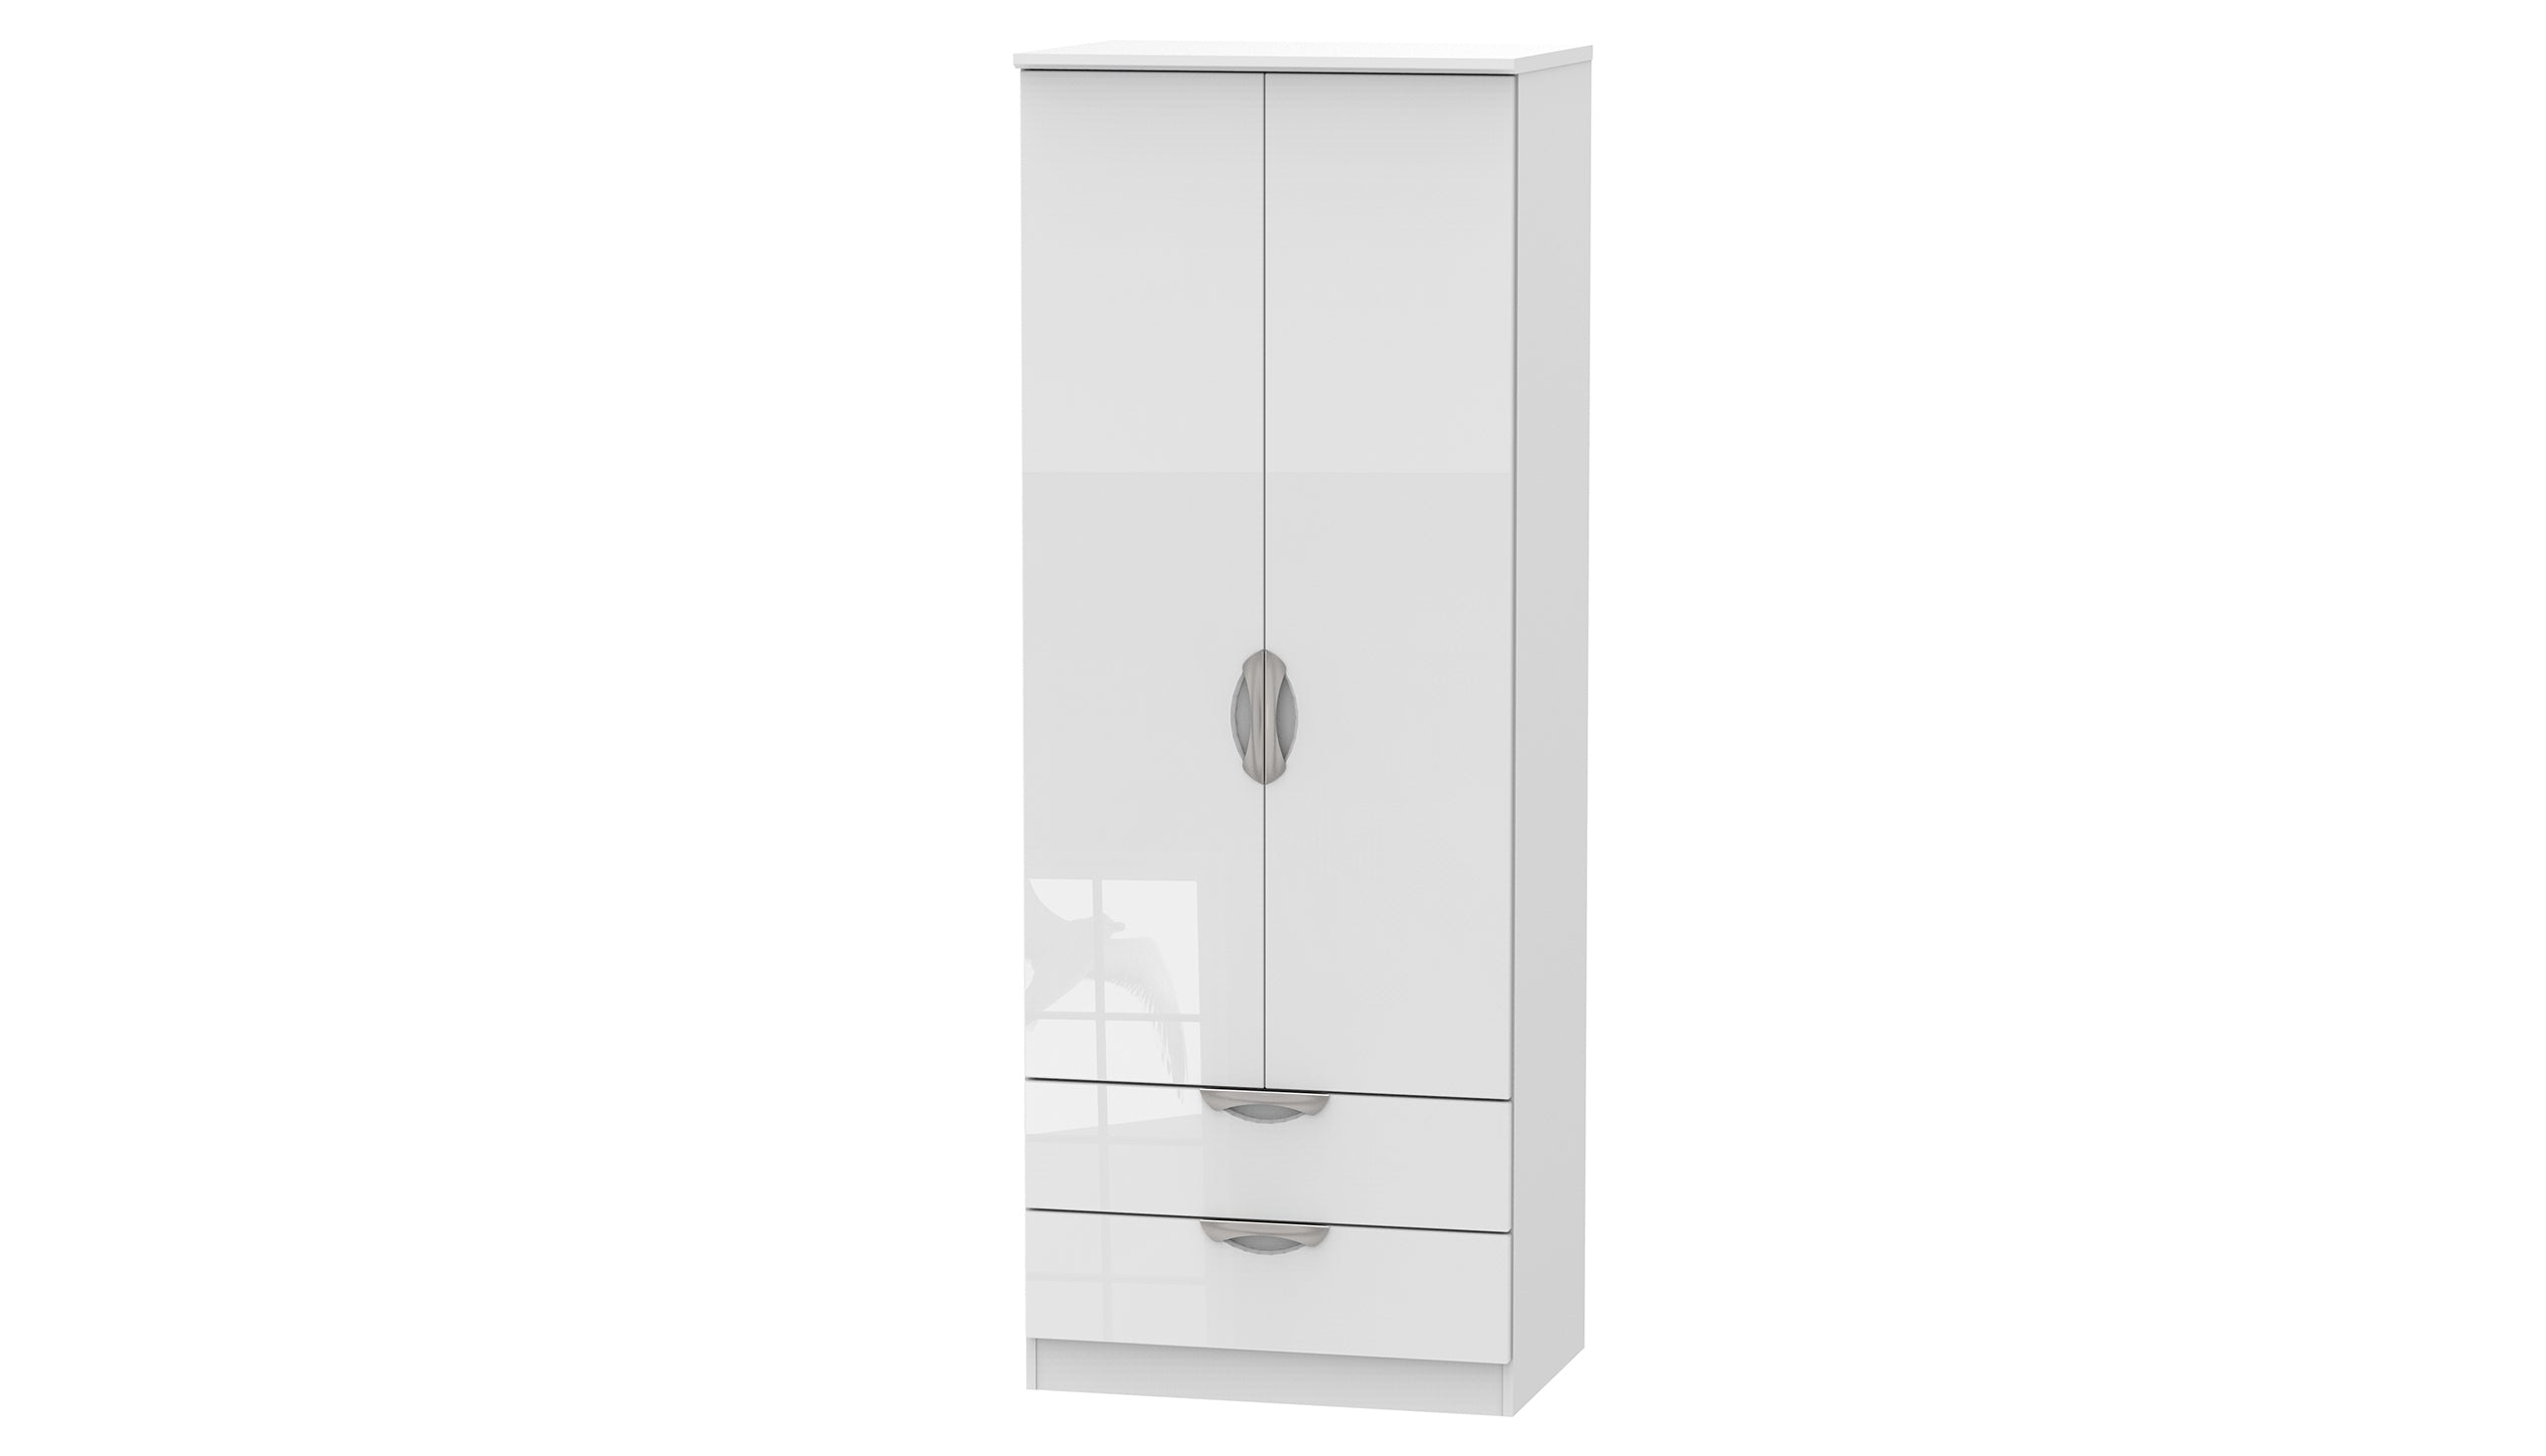 Moda Tall Double 2 Drawer Wardrobe - AHF Furniture & Carpets